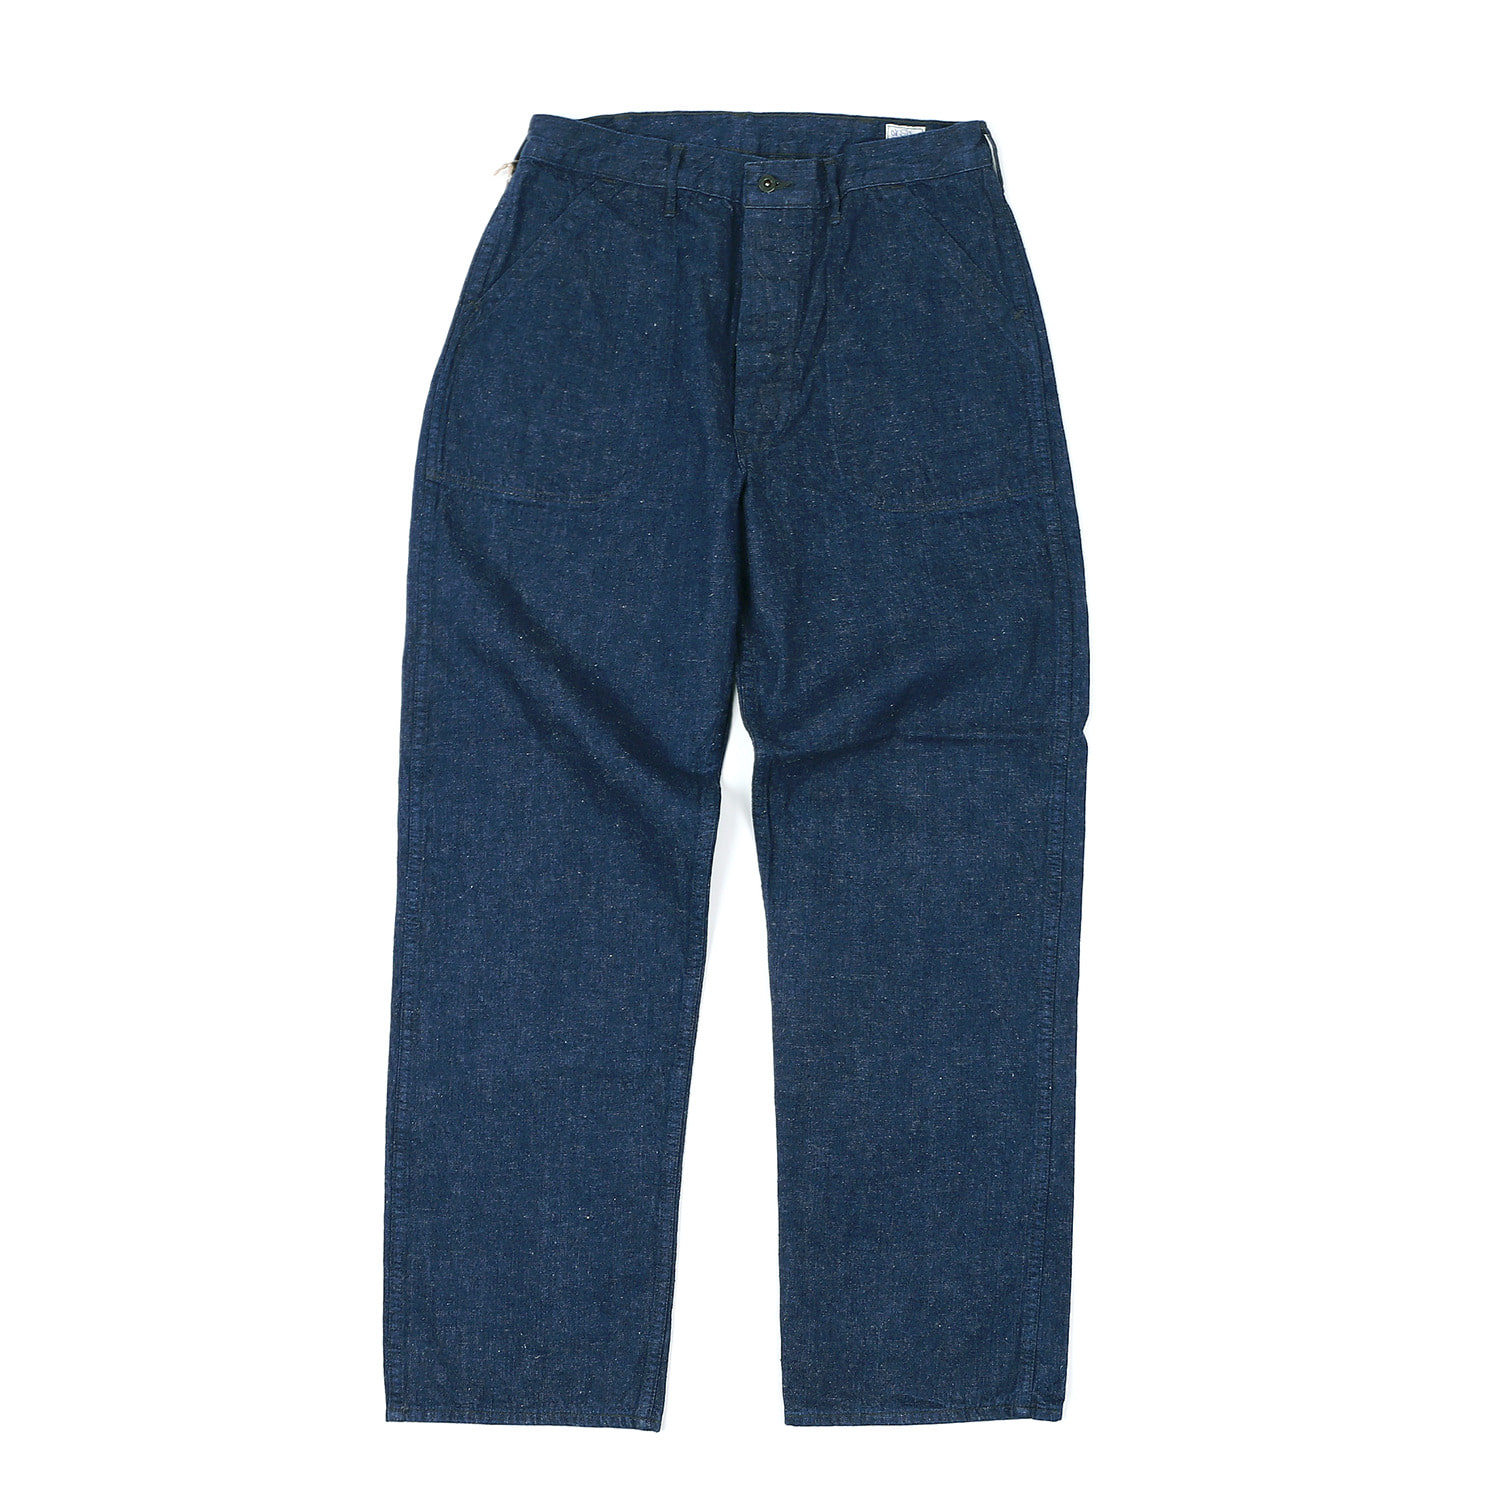 ORSLOW US Navy Utility Denim One Wash (Nep Indigo)